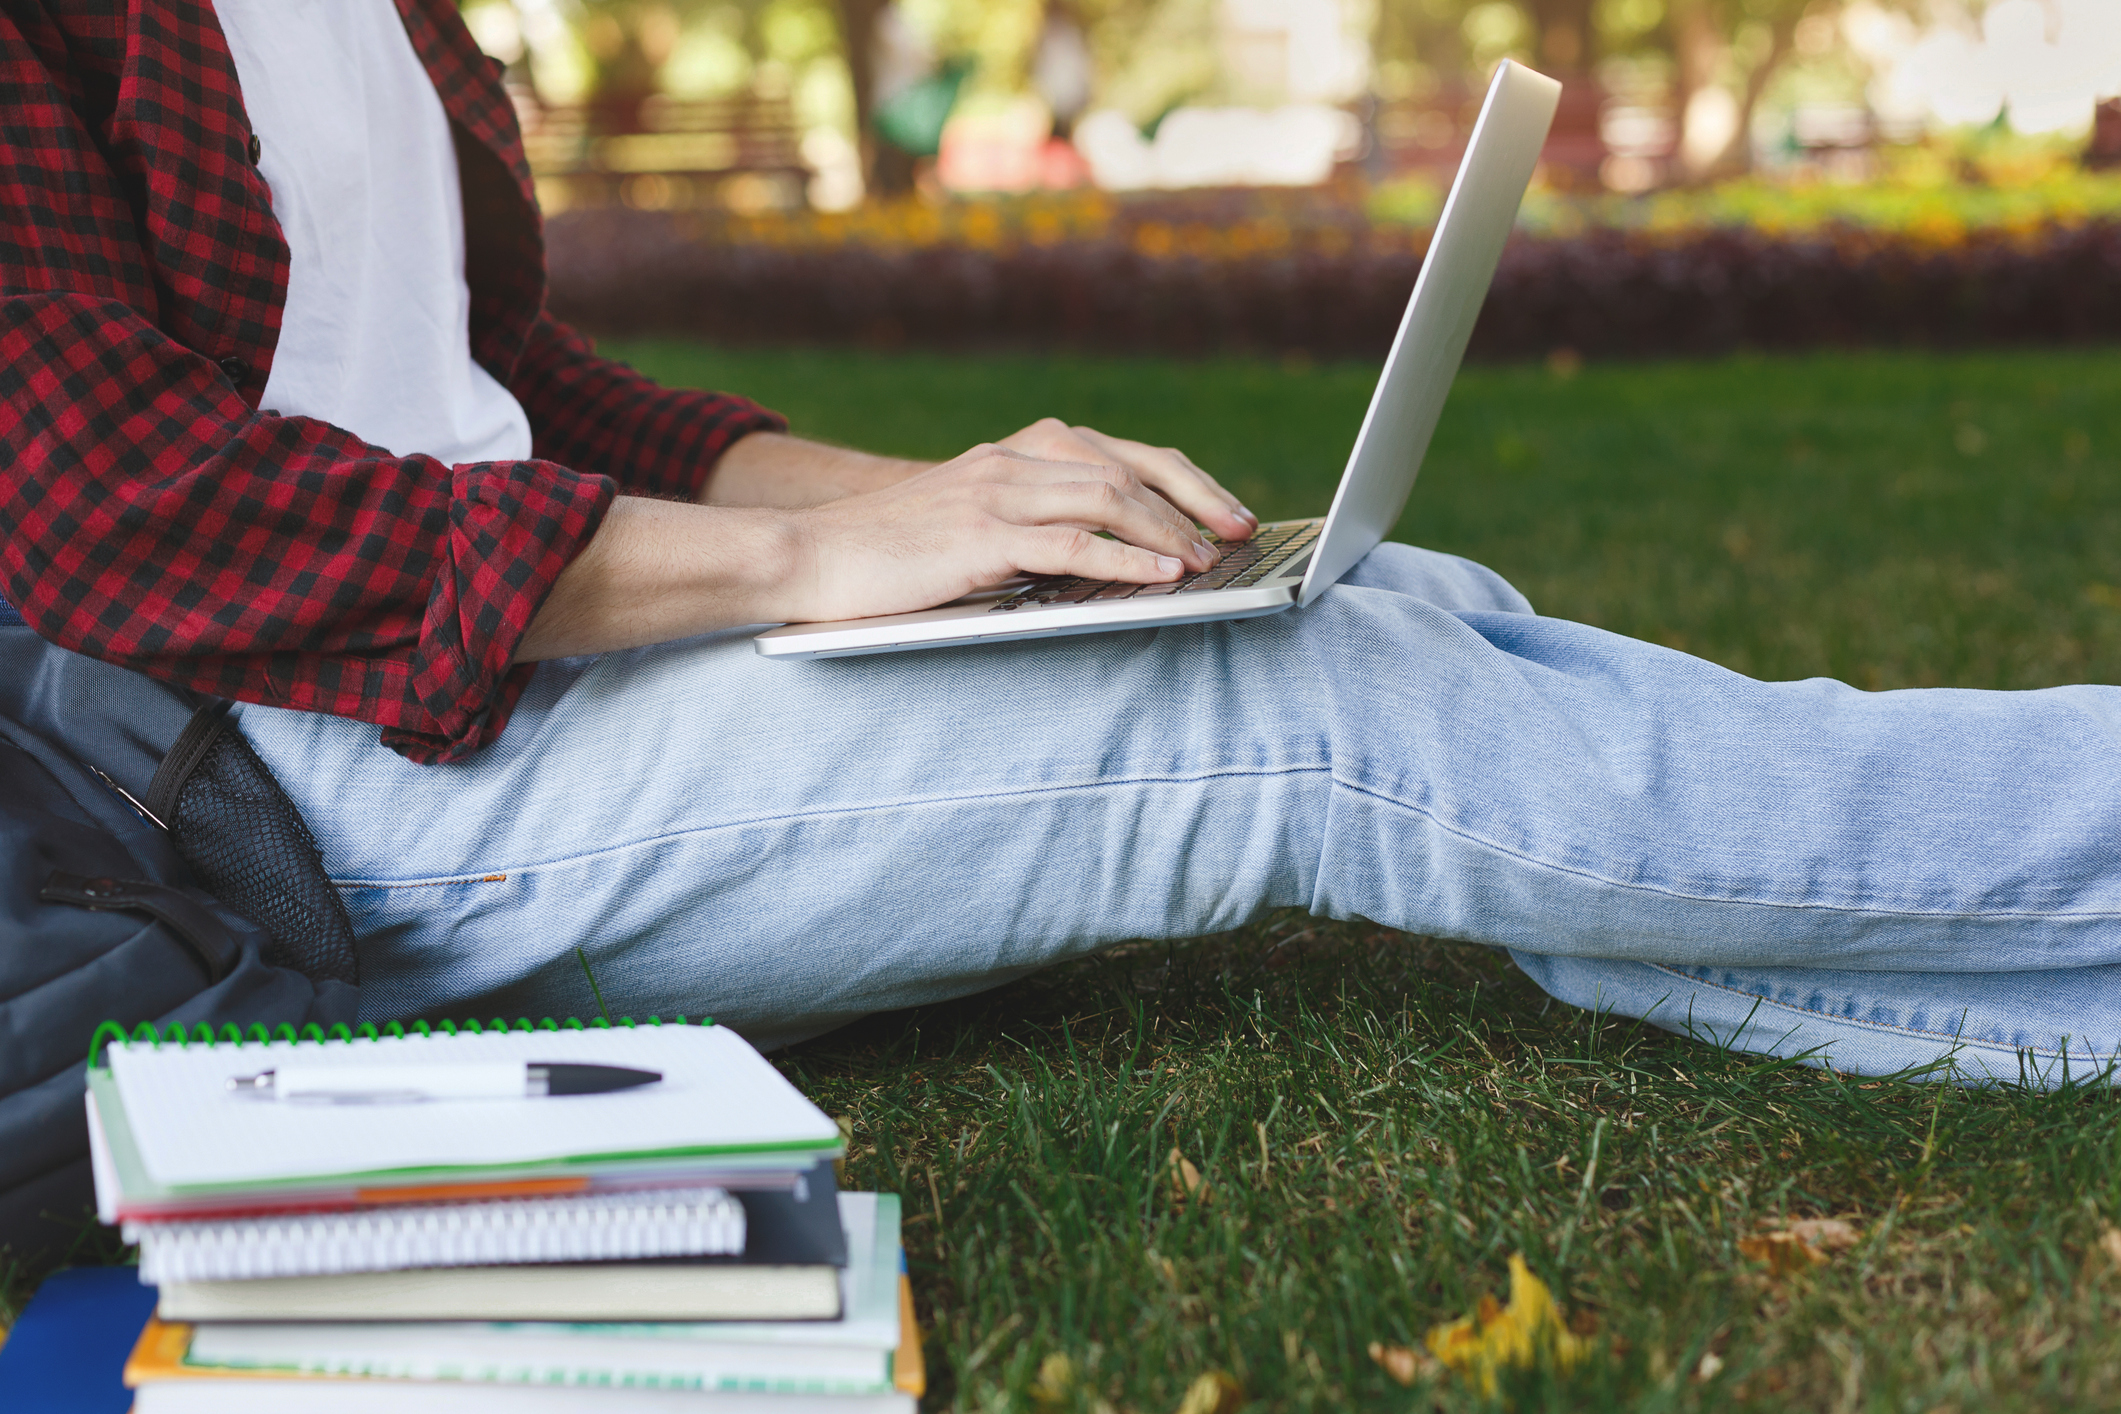 Man in jeans and open plaid shirt sitting on grass typing on laptop